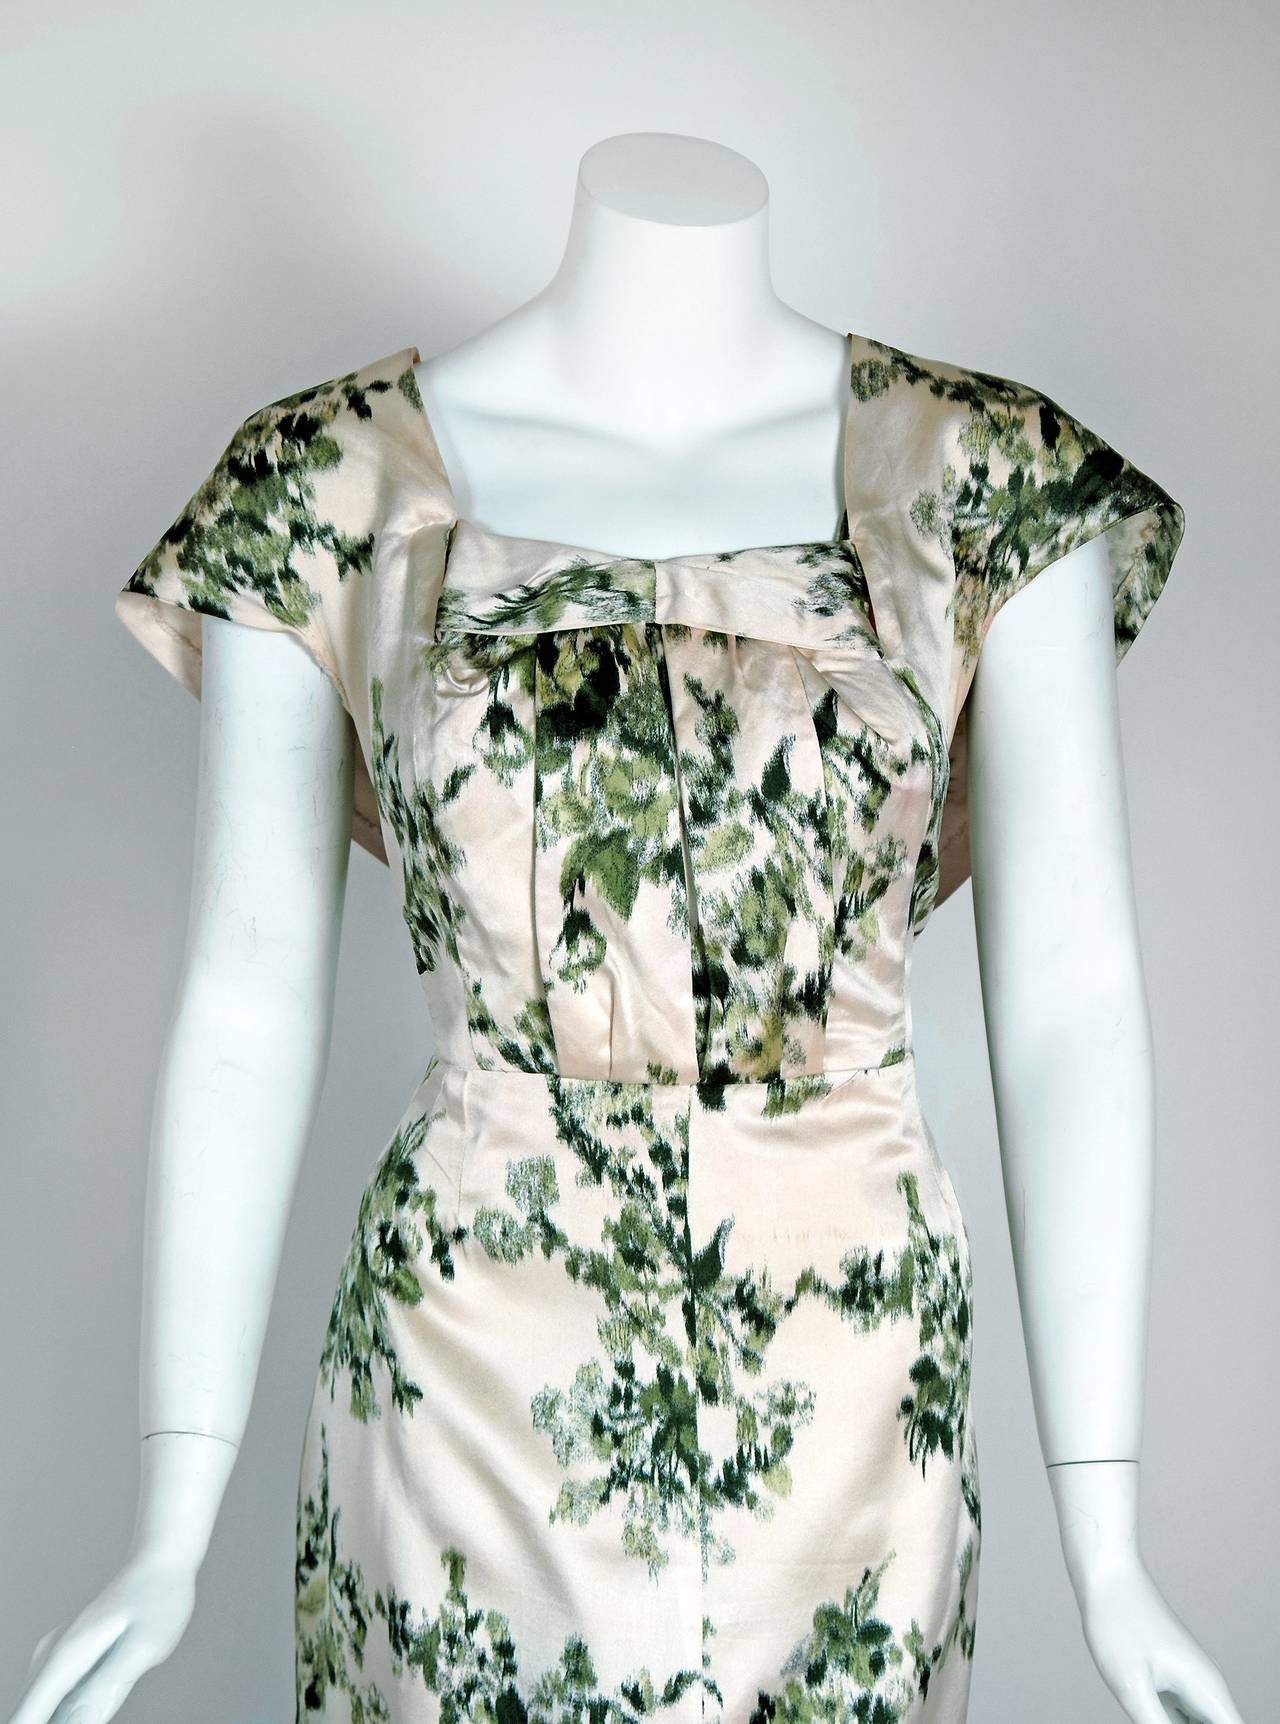 """Breathtaking Lucile Manguin Haute-Couture ivory and green silk-satin cocktail from the 1950's """"new look"""" era of fashion. Lucile Manguin was a Paris couturiere, designing from 1928 until 1960, whose house was known for spectacular fabrics and fine"""